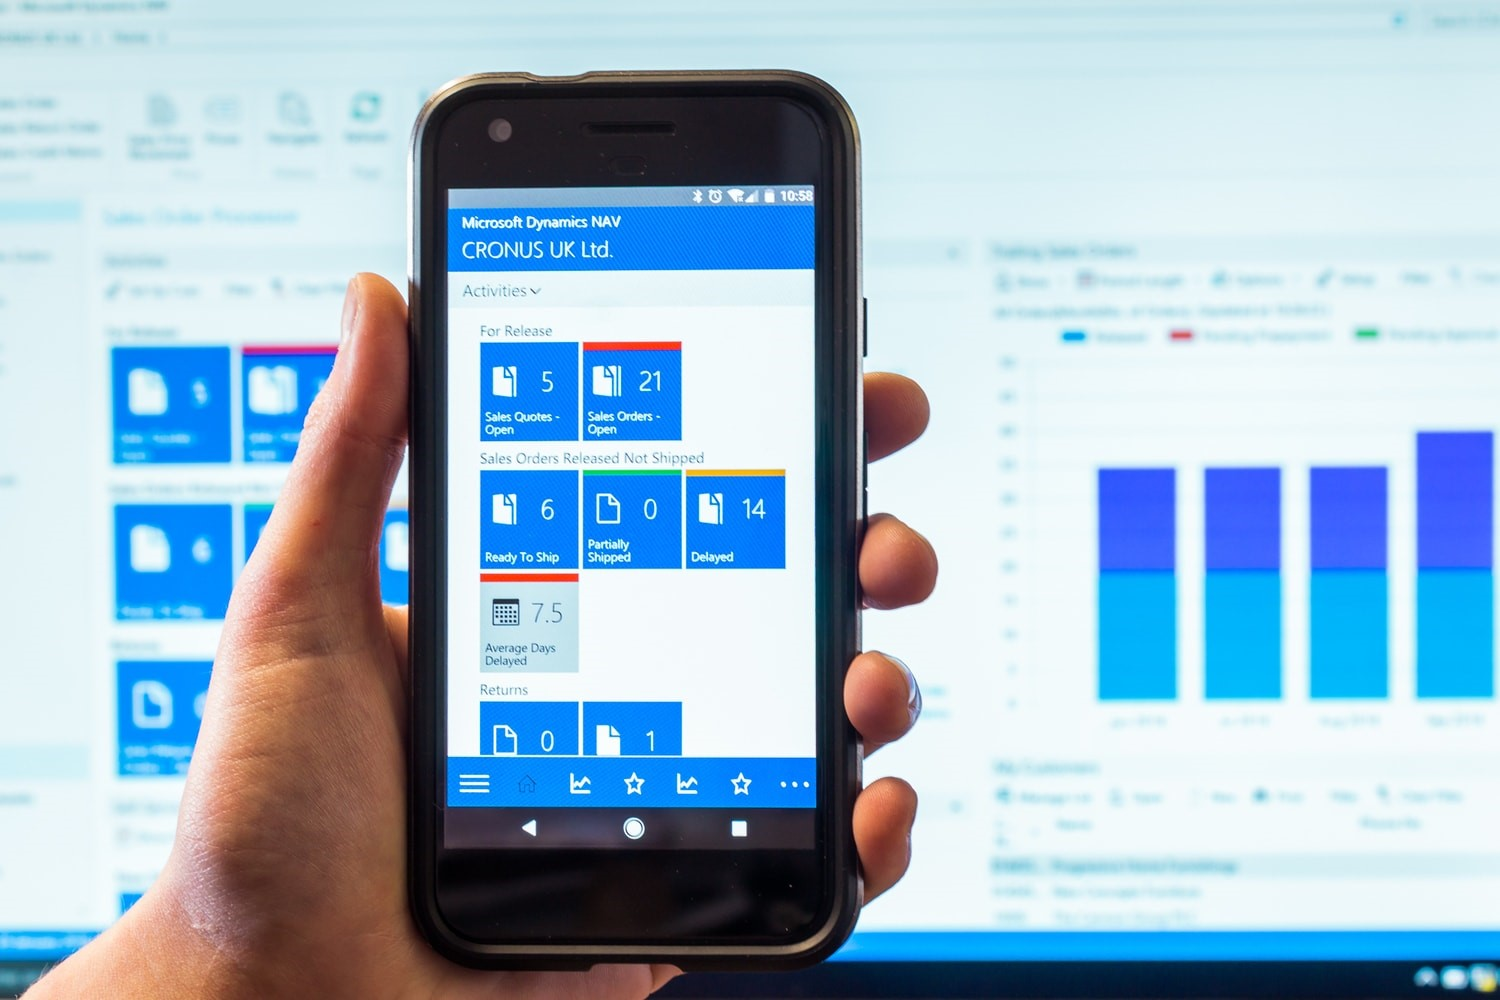 Is Microsoft Dynamics Right for you?